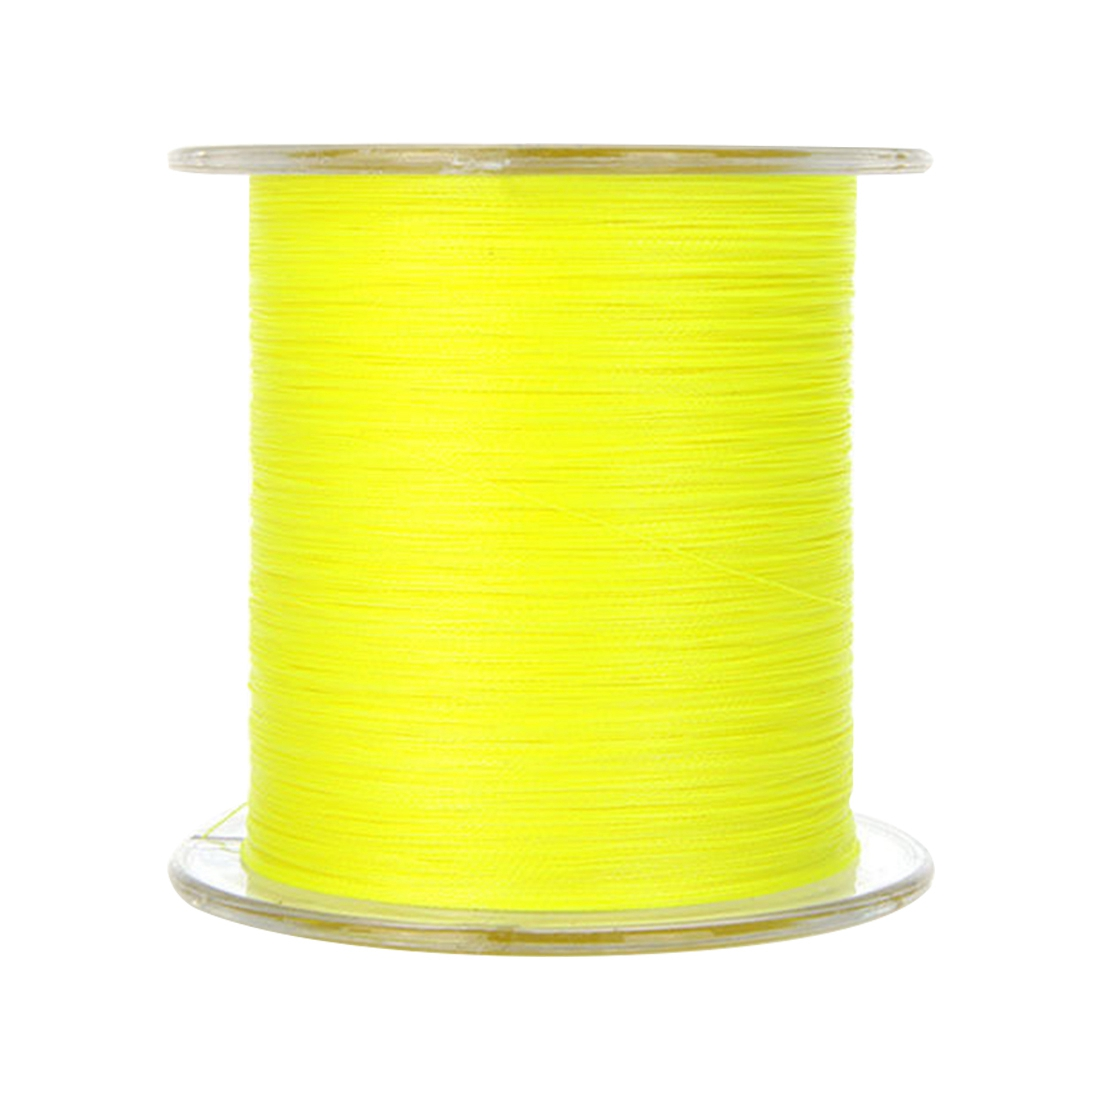 300M 50LB 0.26mm Fishing Line Strong Braided 4 Strands High quality Color:Yellow